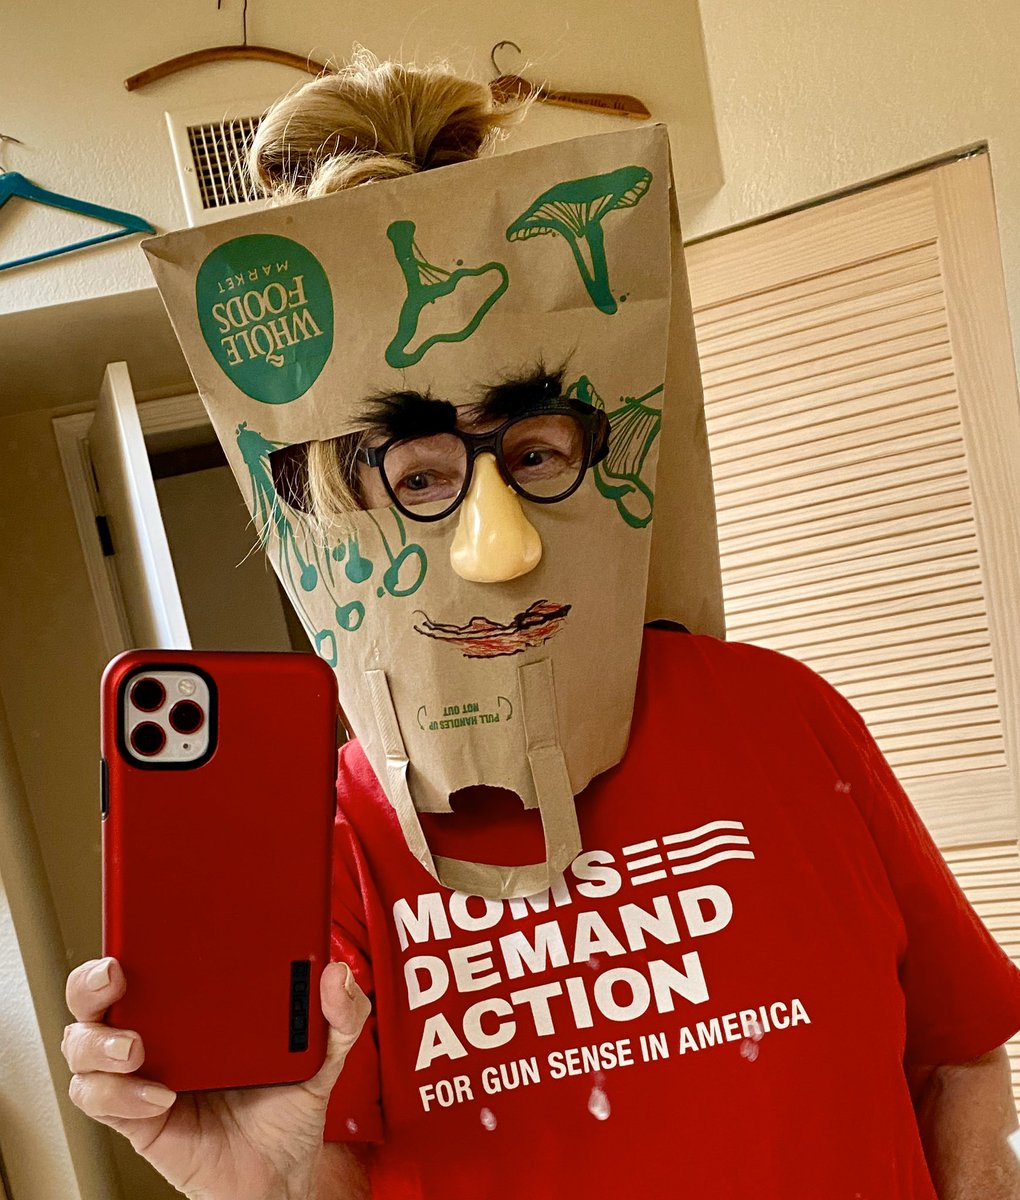 #FreakyFriday @MomsDemand show us your  PPE Personal Protection. We are creative, persistent, we #KeepGoing... even thru #COVID19   MOMS will be here.. virtually working for #CommonSense #GunLaws  text JOIN to 644-33. pic.twitter.com/VcuyQ9xBWu